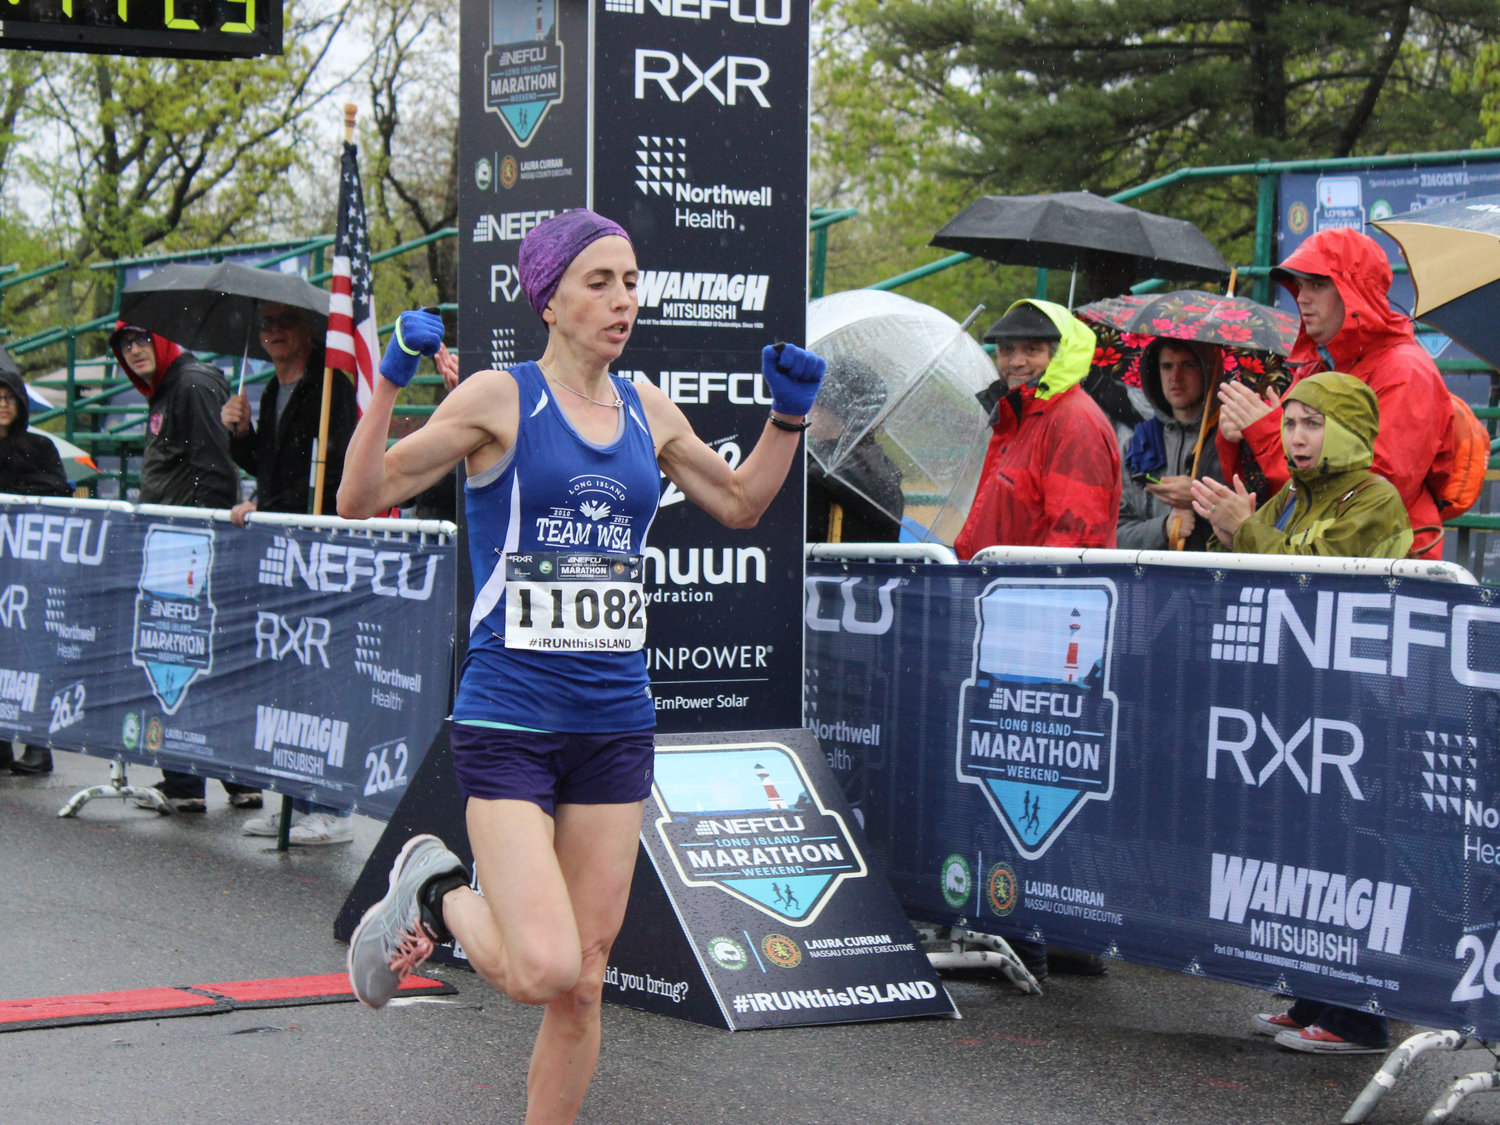 Shari Klarfeld, of Plainview, finished second in the 10K race out of the female competitors.